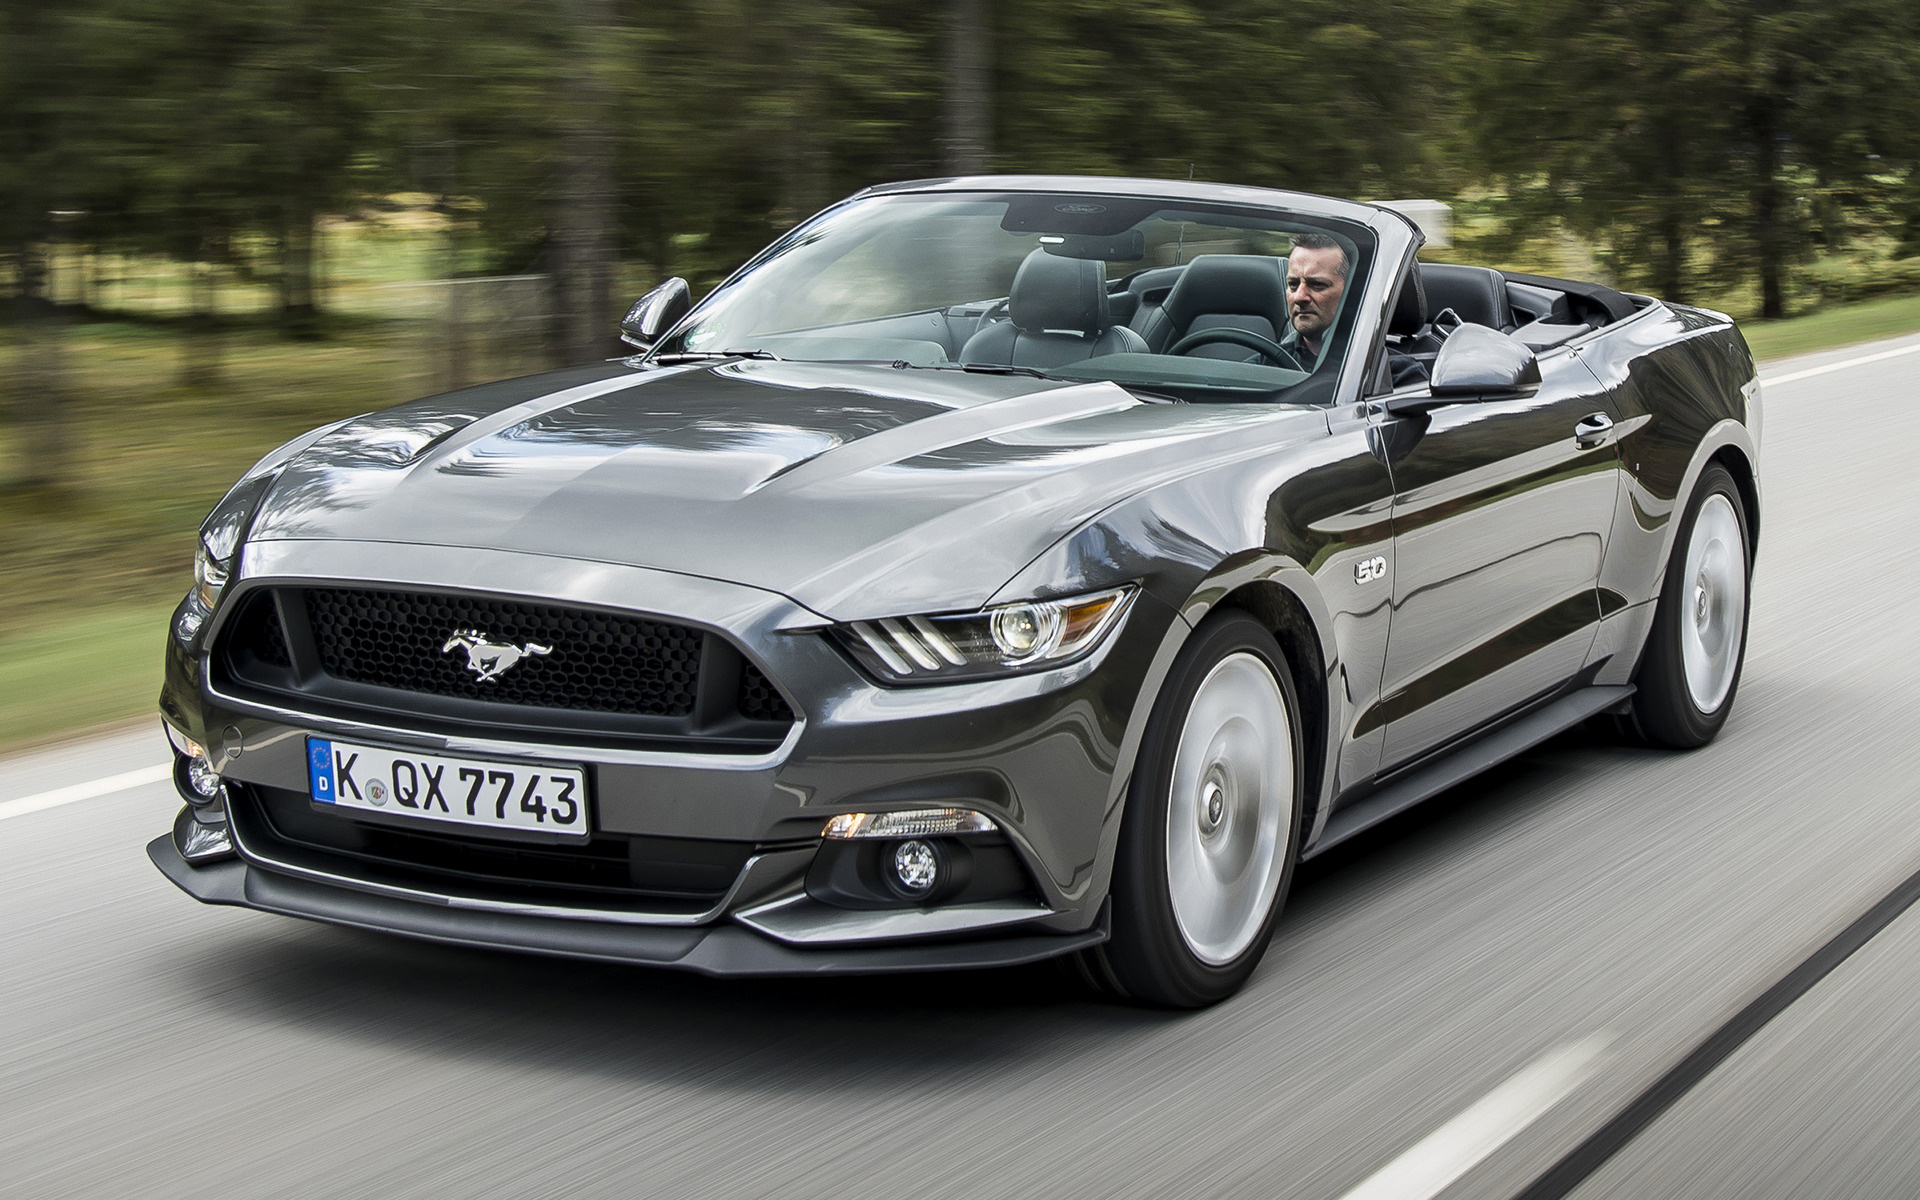 Ford Mustang GT Convertible (2015) EU Wallpapers and HD ...